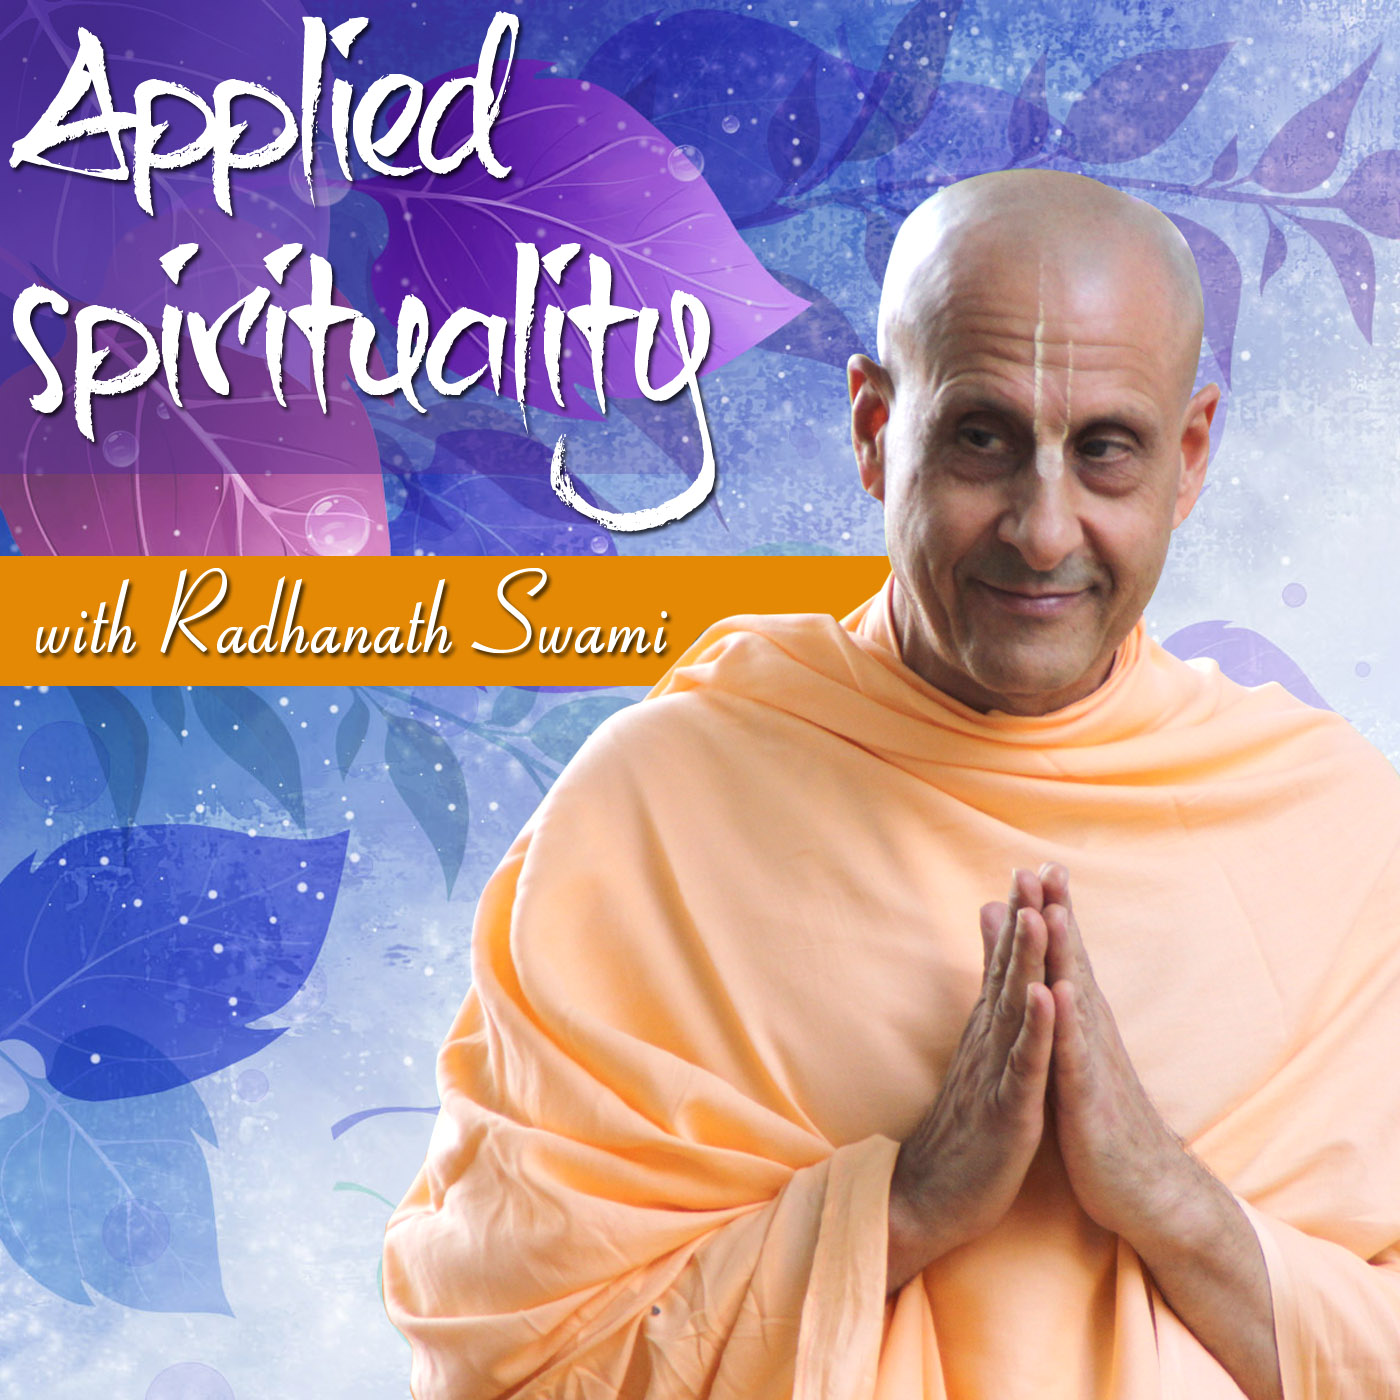 Applied Spirituality with Radhanath Swami